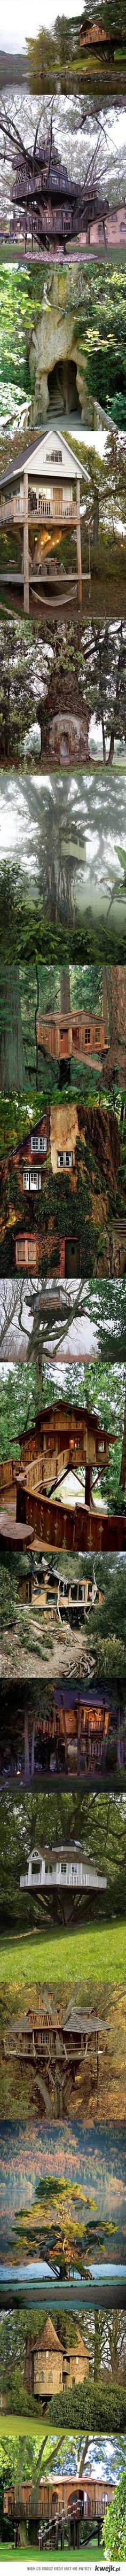 I want a grown-up tree house